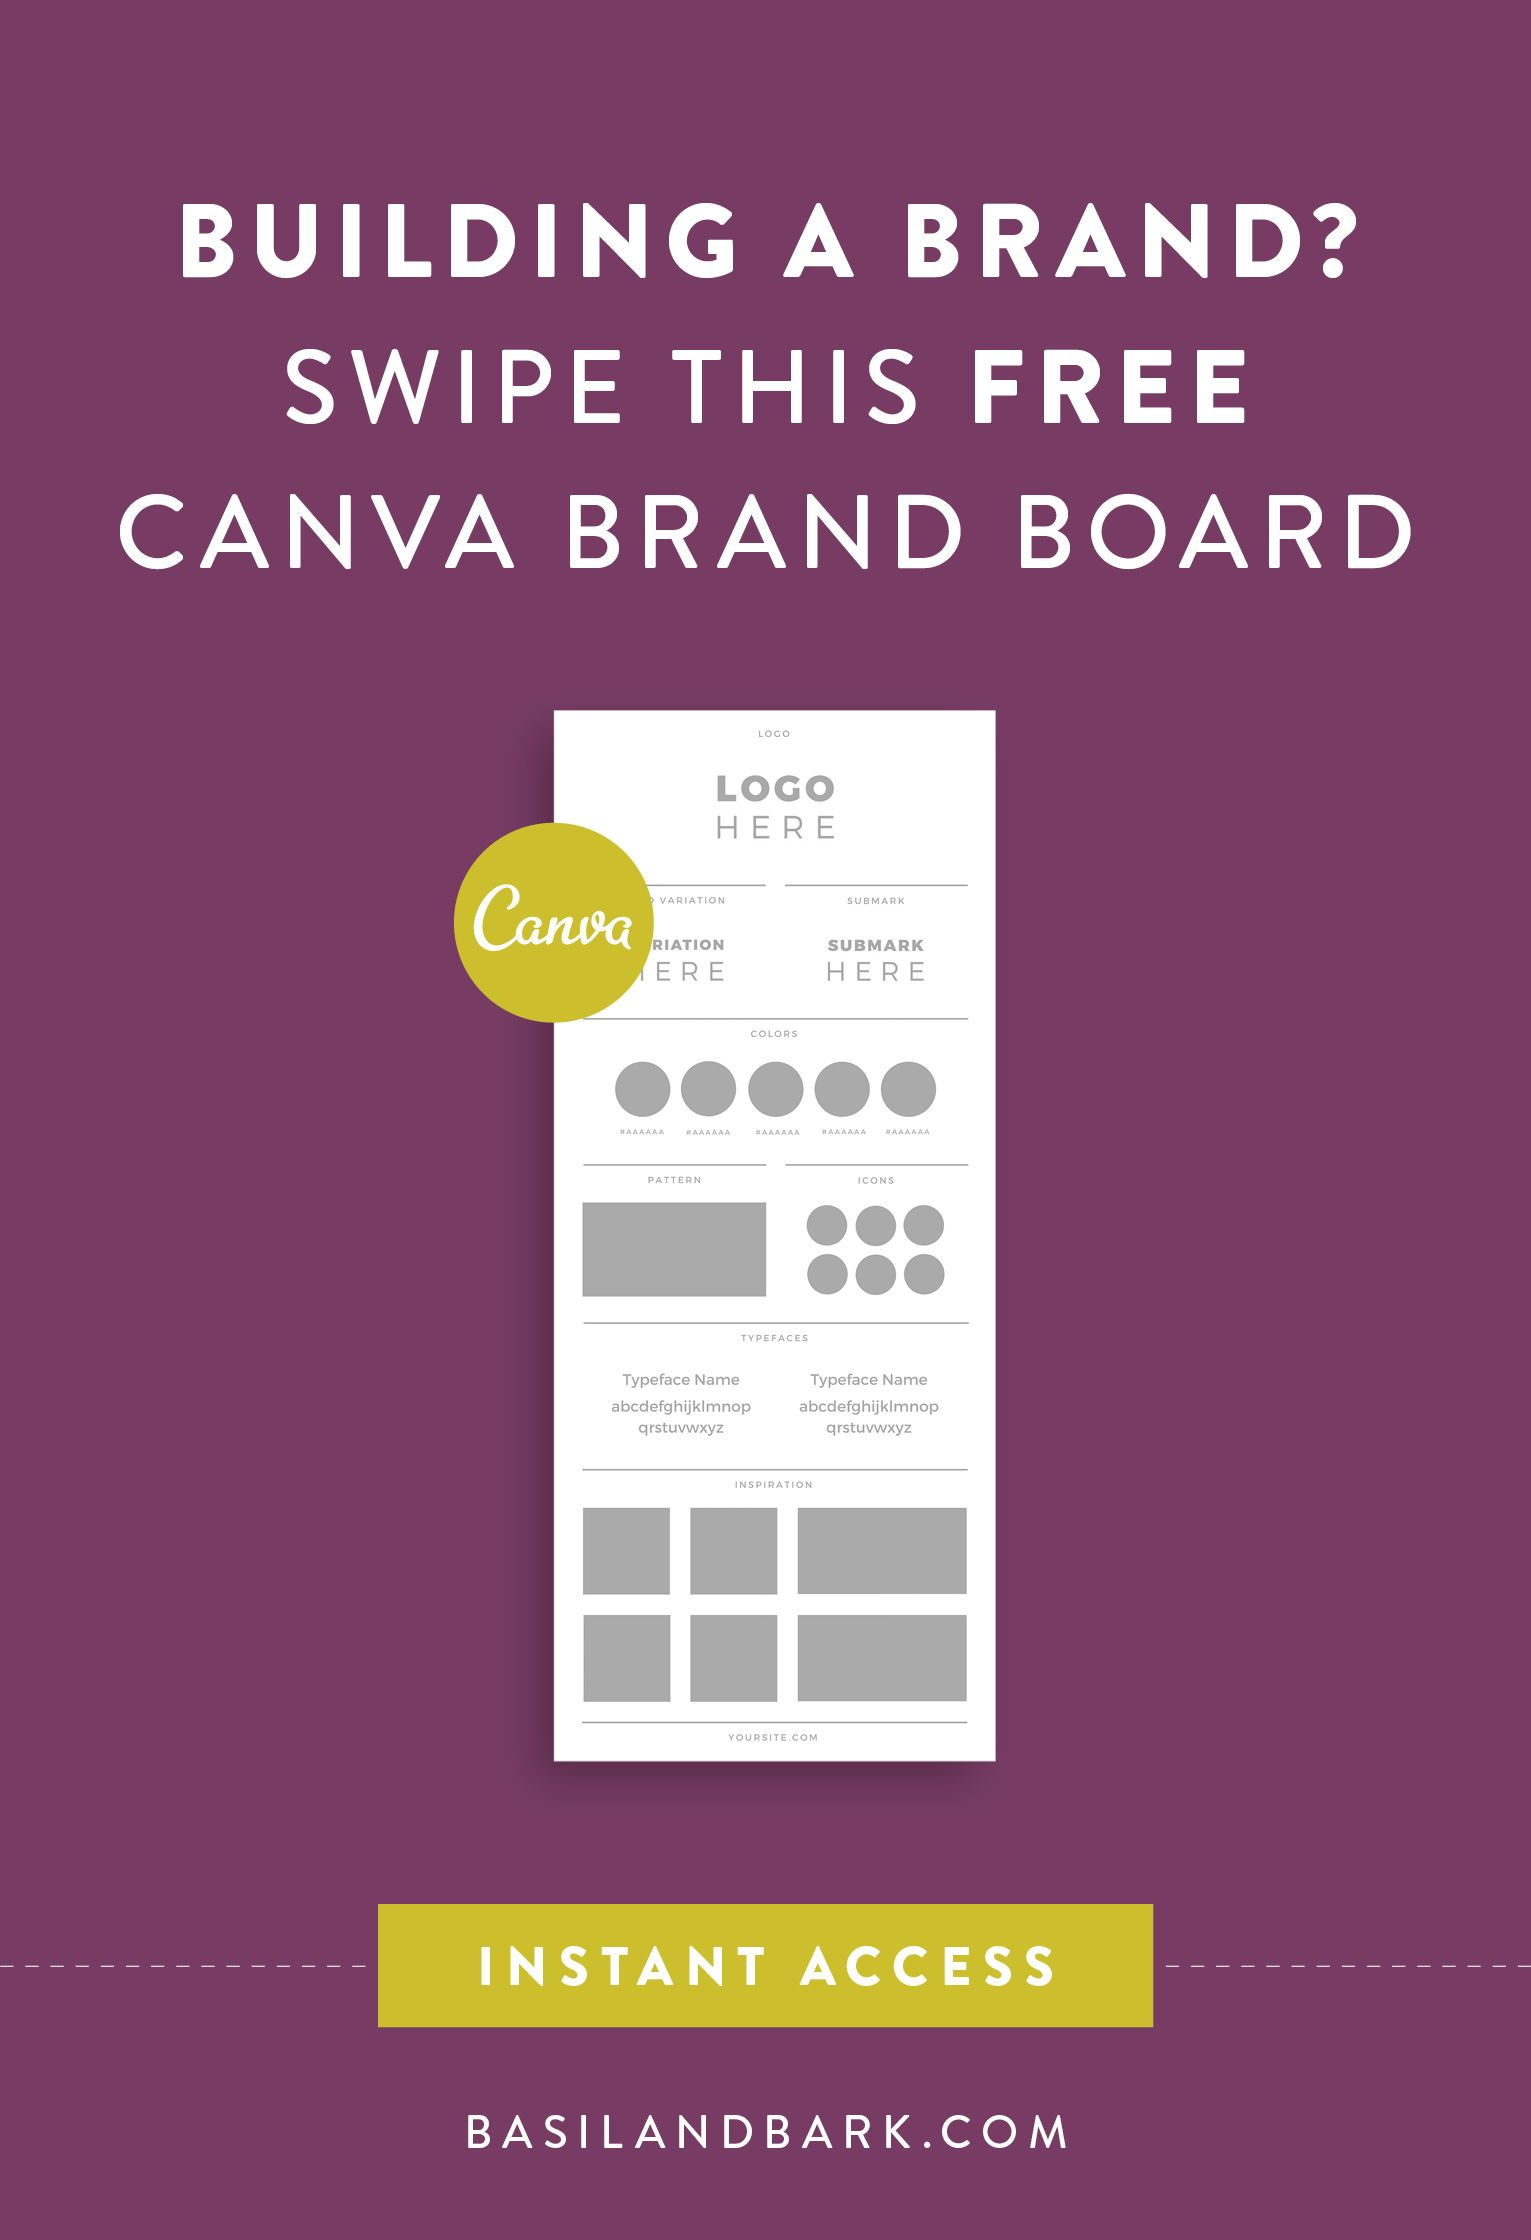 Building A Brand Swipe This Free Brand Board Template In Canva So You Can Start Creating A Set Of Brand Board Template Brand Board Marketing Strategy Template